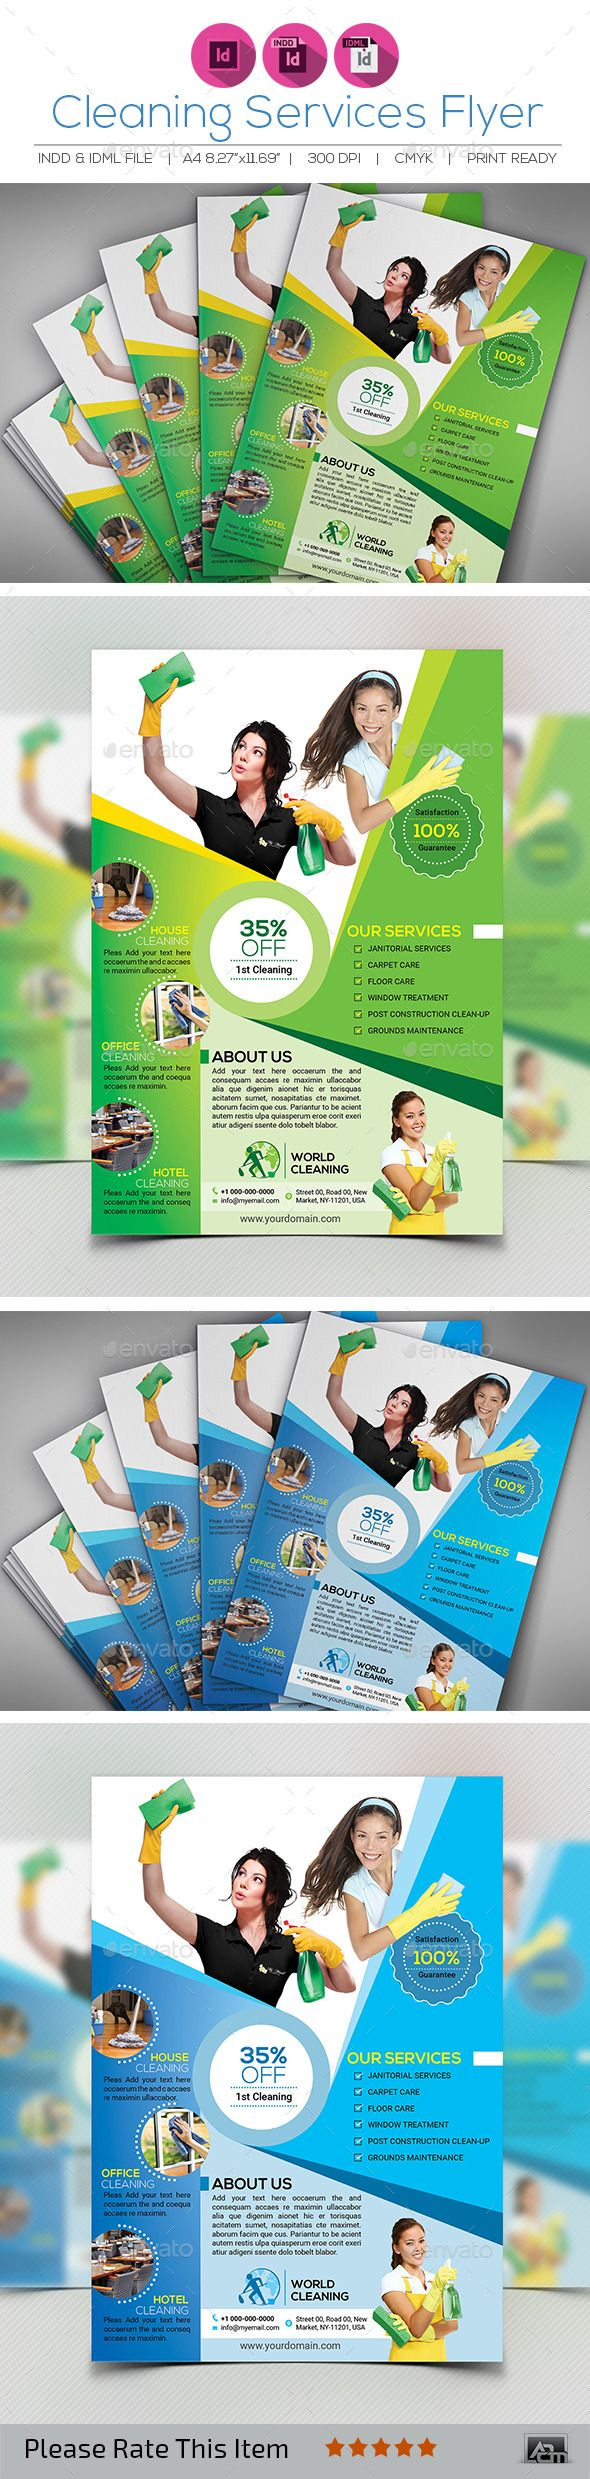 17 best ideas about cleaning services cleaning cleaning services flyer indesign indd glass clean design available here →